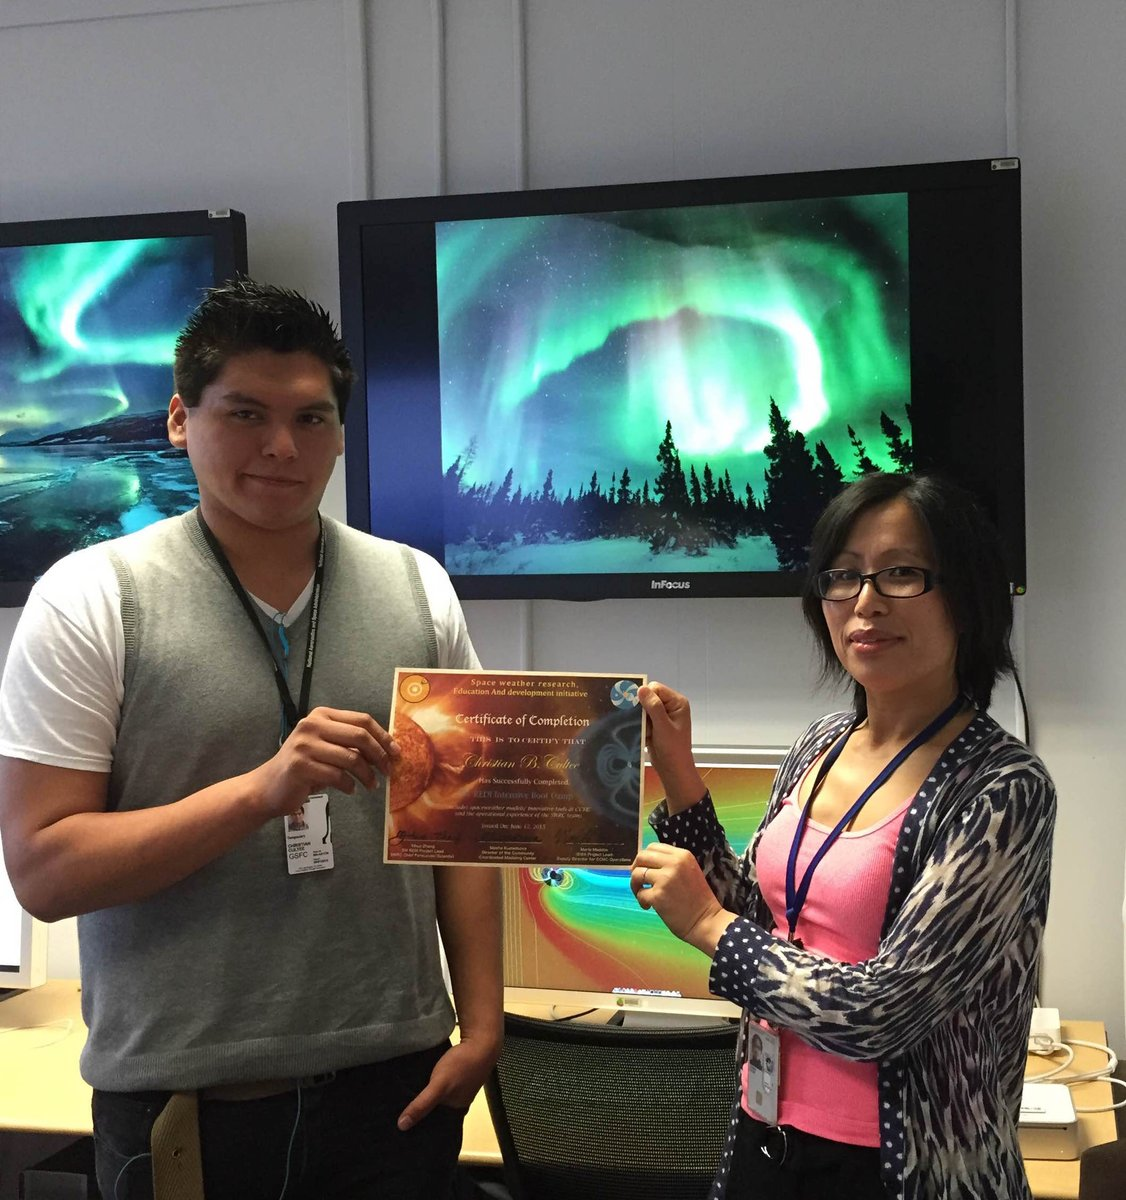 This summer, I learned the basics of #spaceweather at a boot camp at @NASAGoddard #RaceOnTech http://t.co/fZnPEXmxKD http://t.co/wd32XCd0us